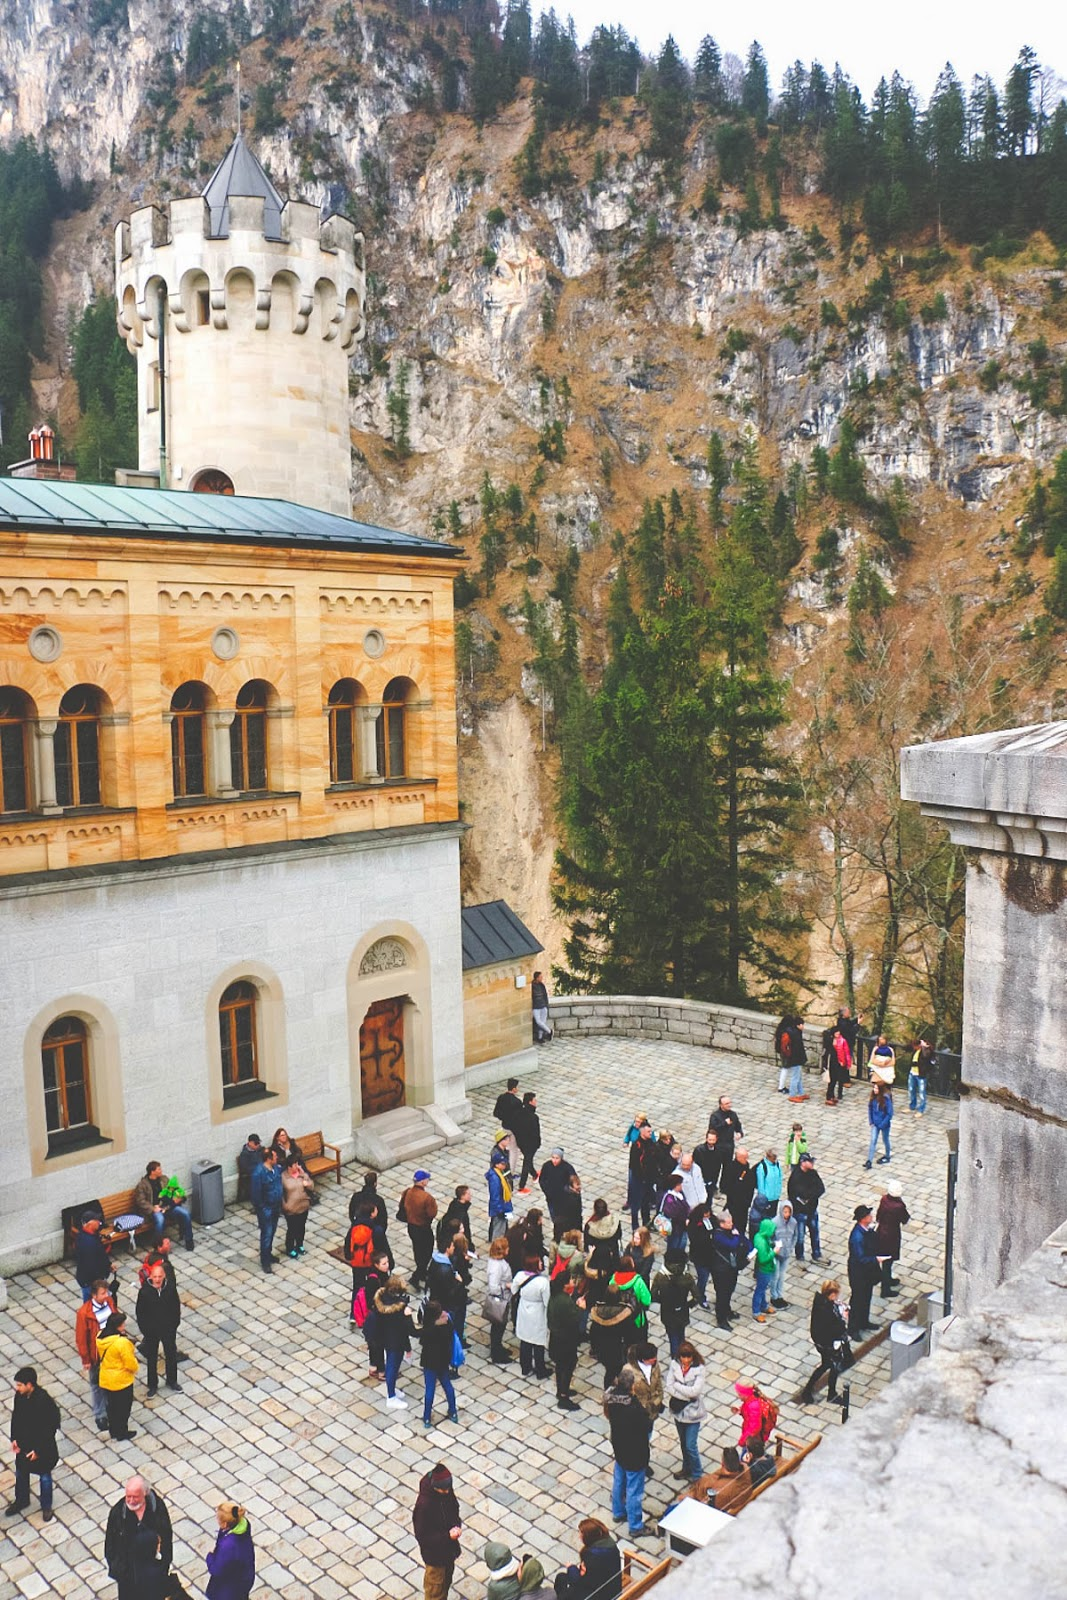 The Pros and Cons of Neuschwanstein Castle